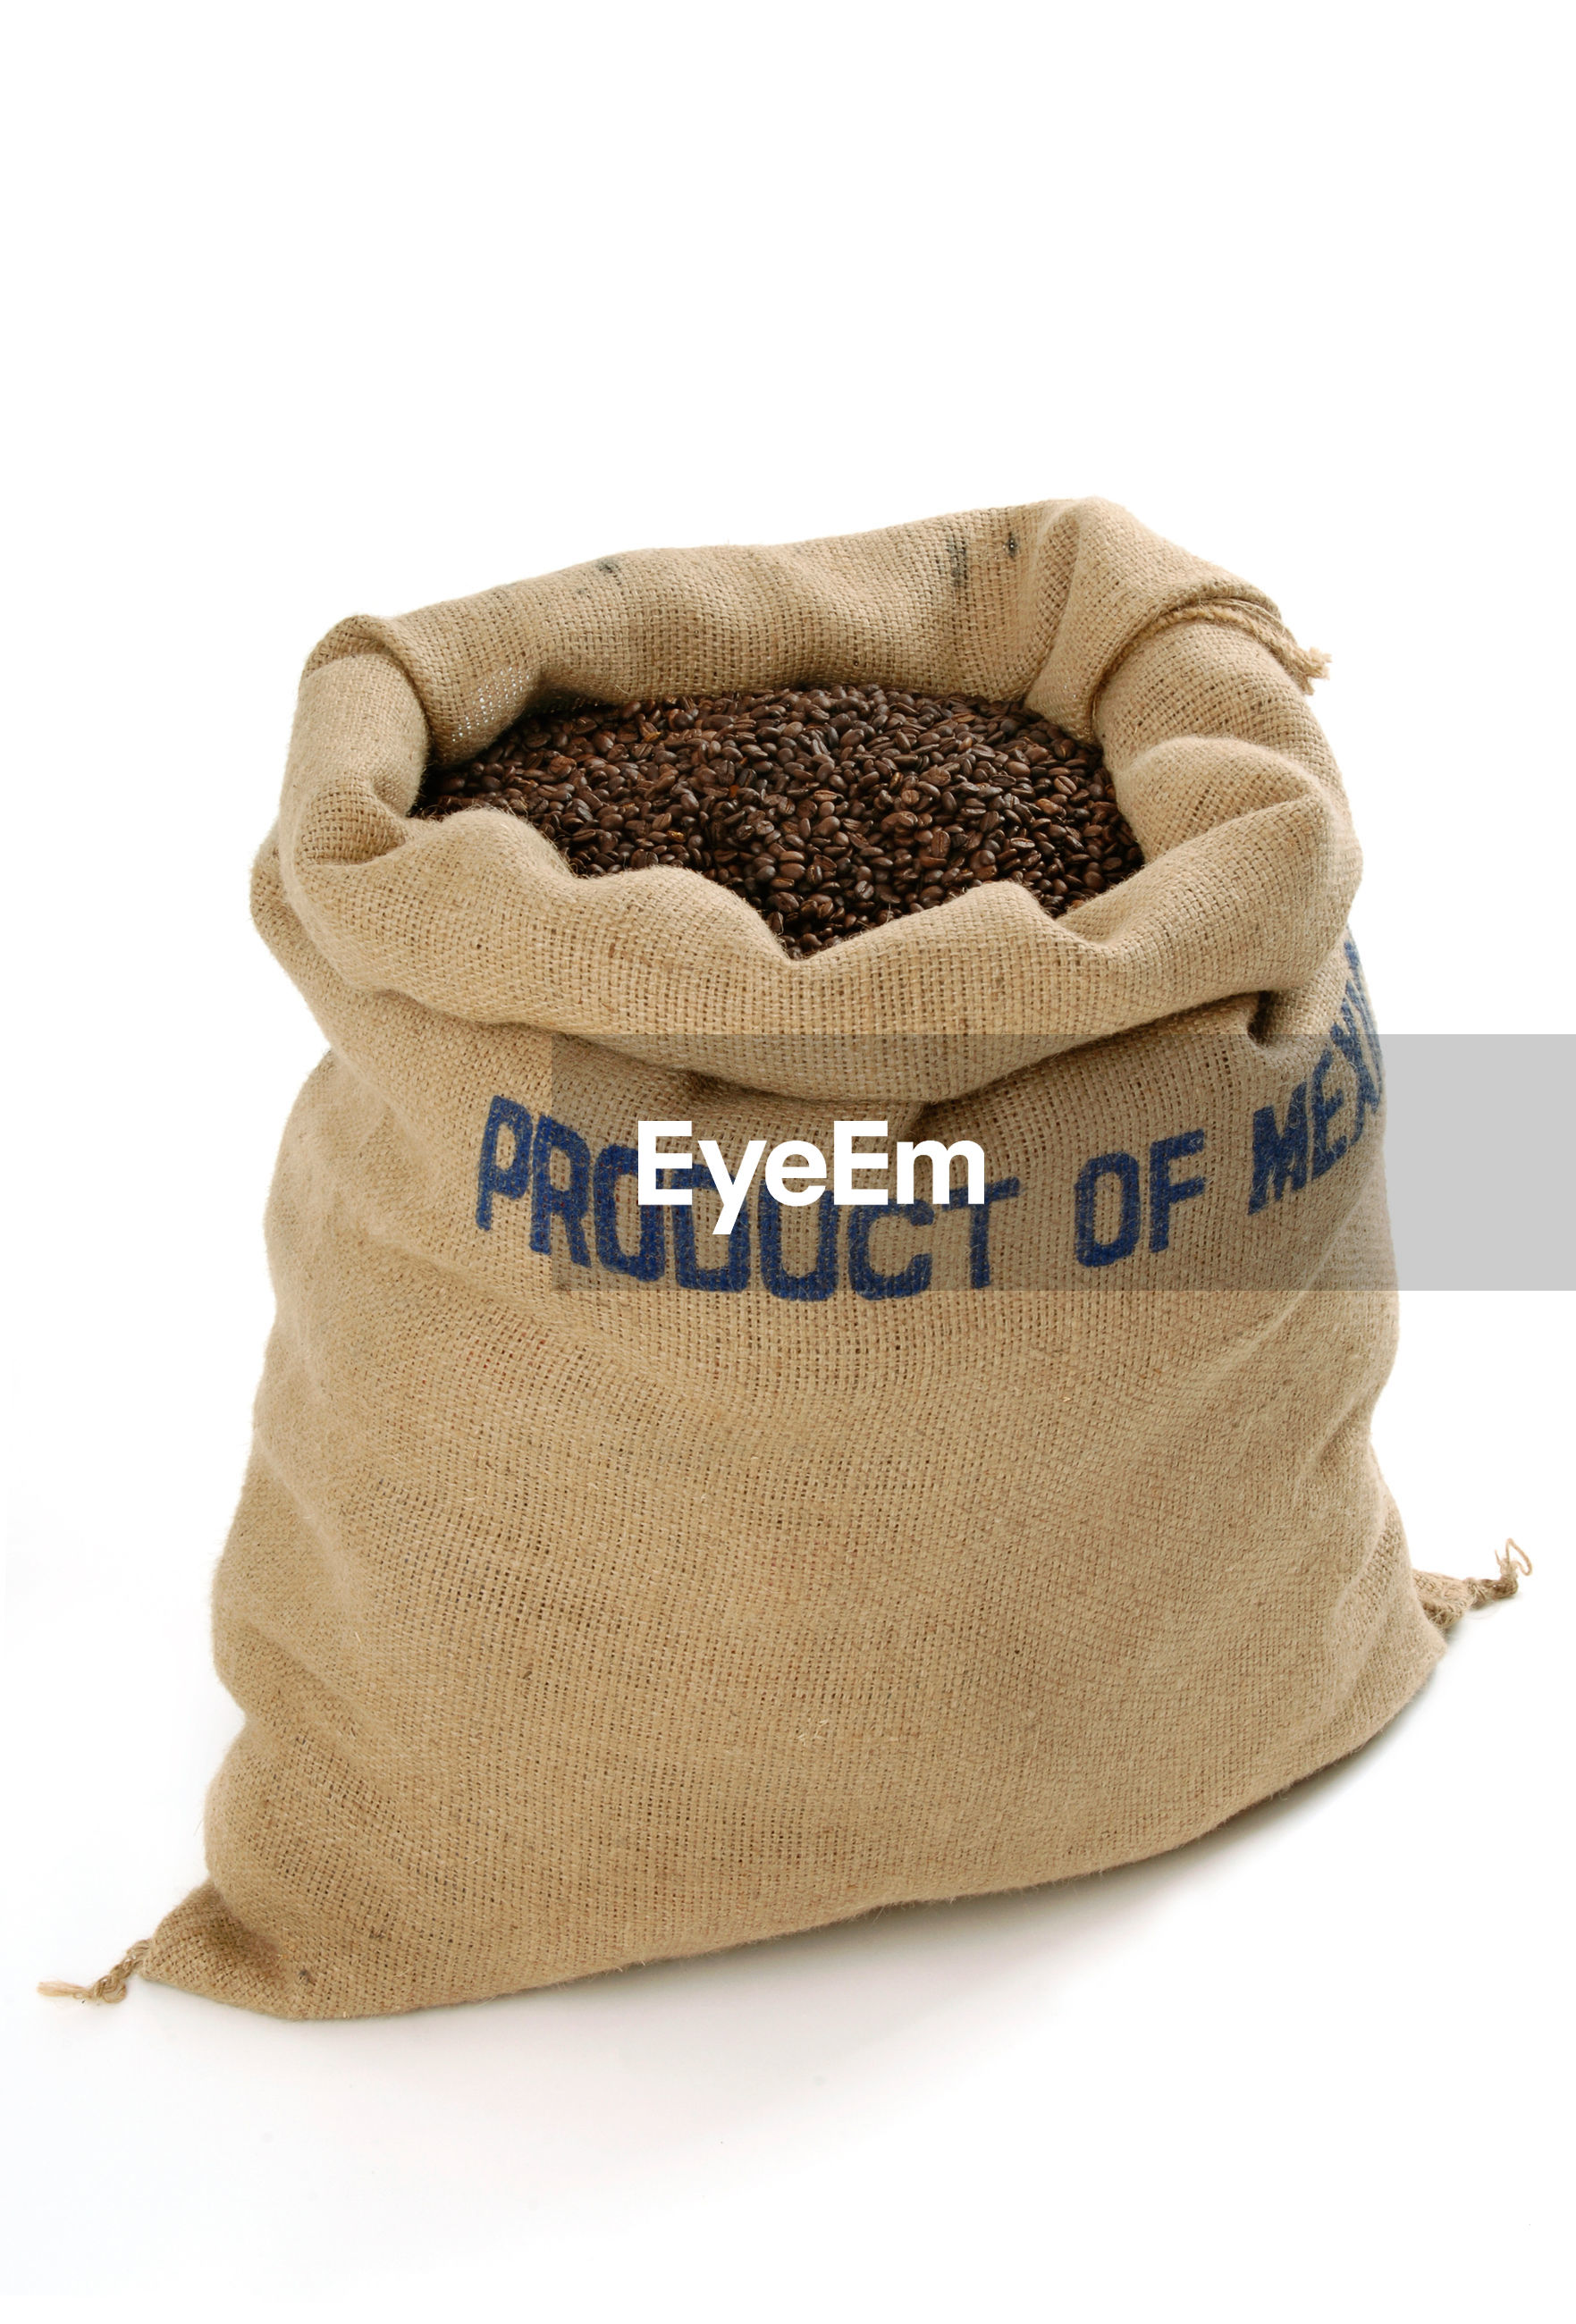 Close-up of roasted coffee beans in sack over white background